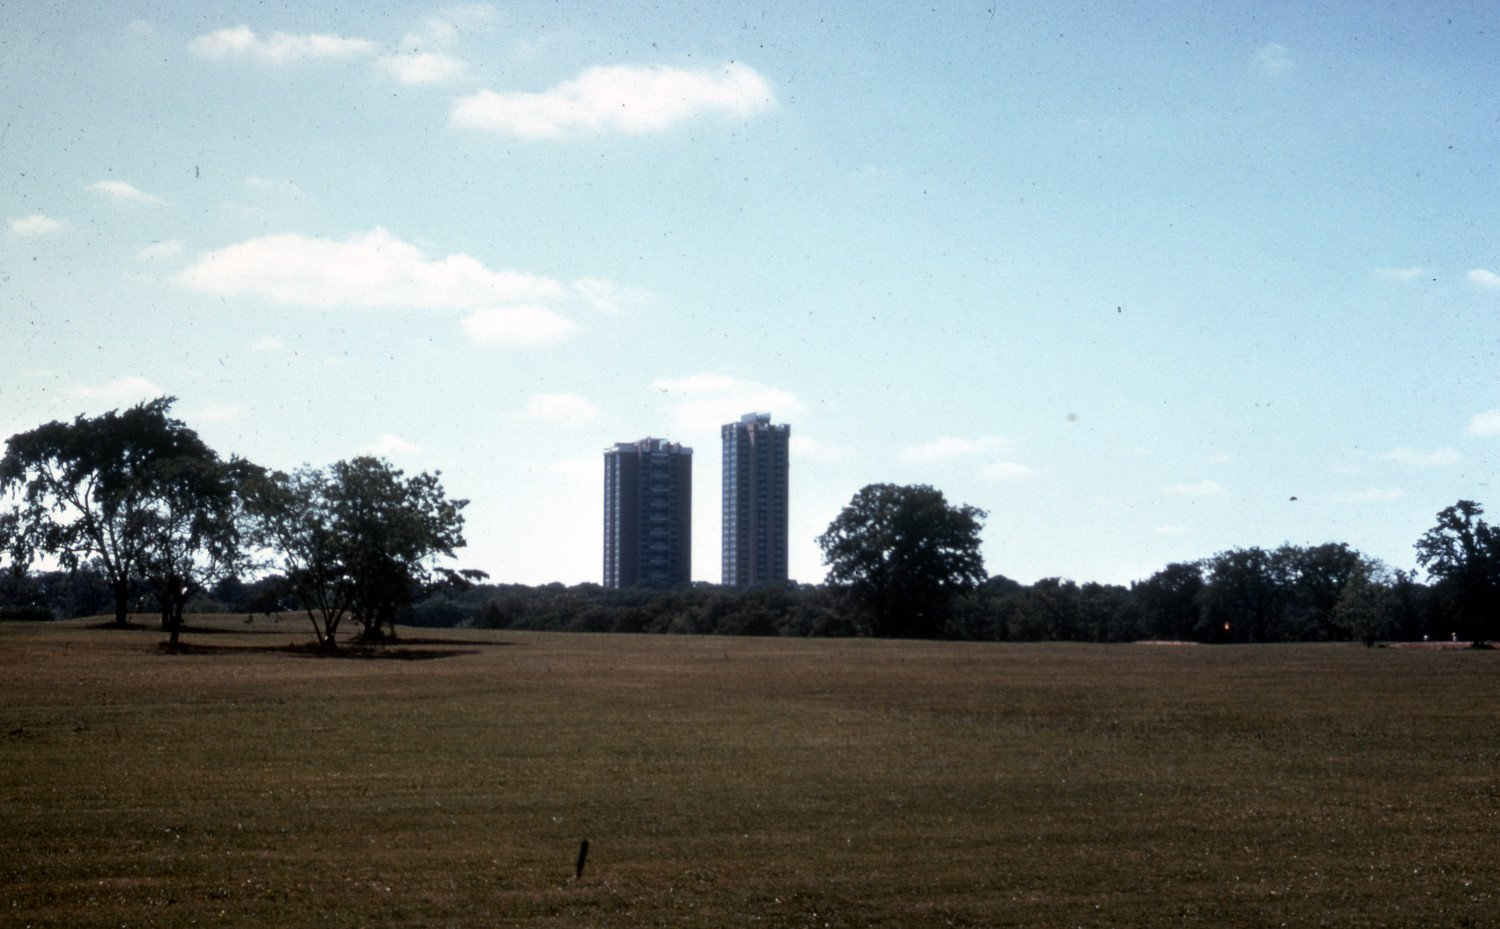 Size comparison of Guinn Hall (right) compared to Stark Hall (left), 1978. Courtesy of University of North Texas Libraries and Denton Public Library.